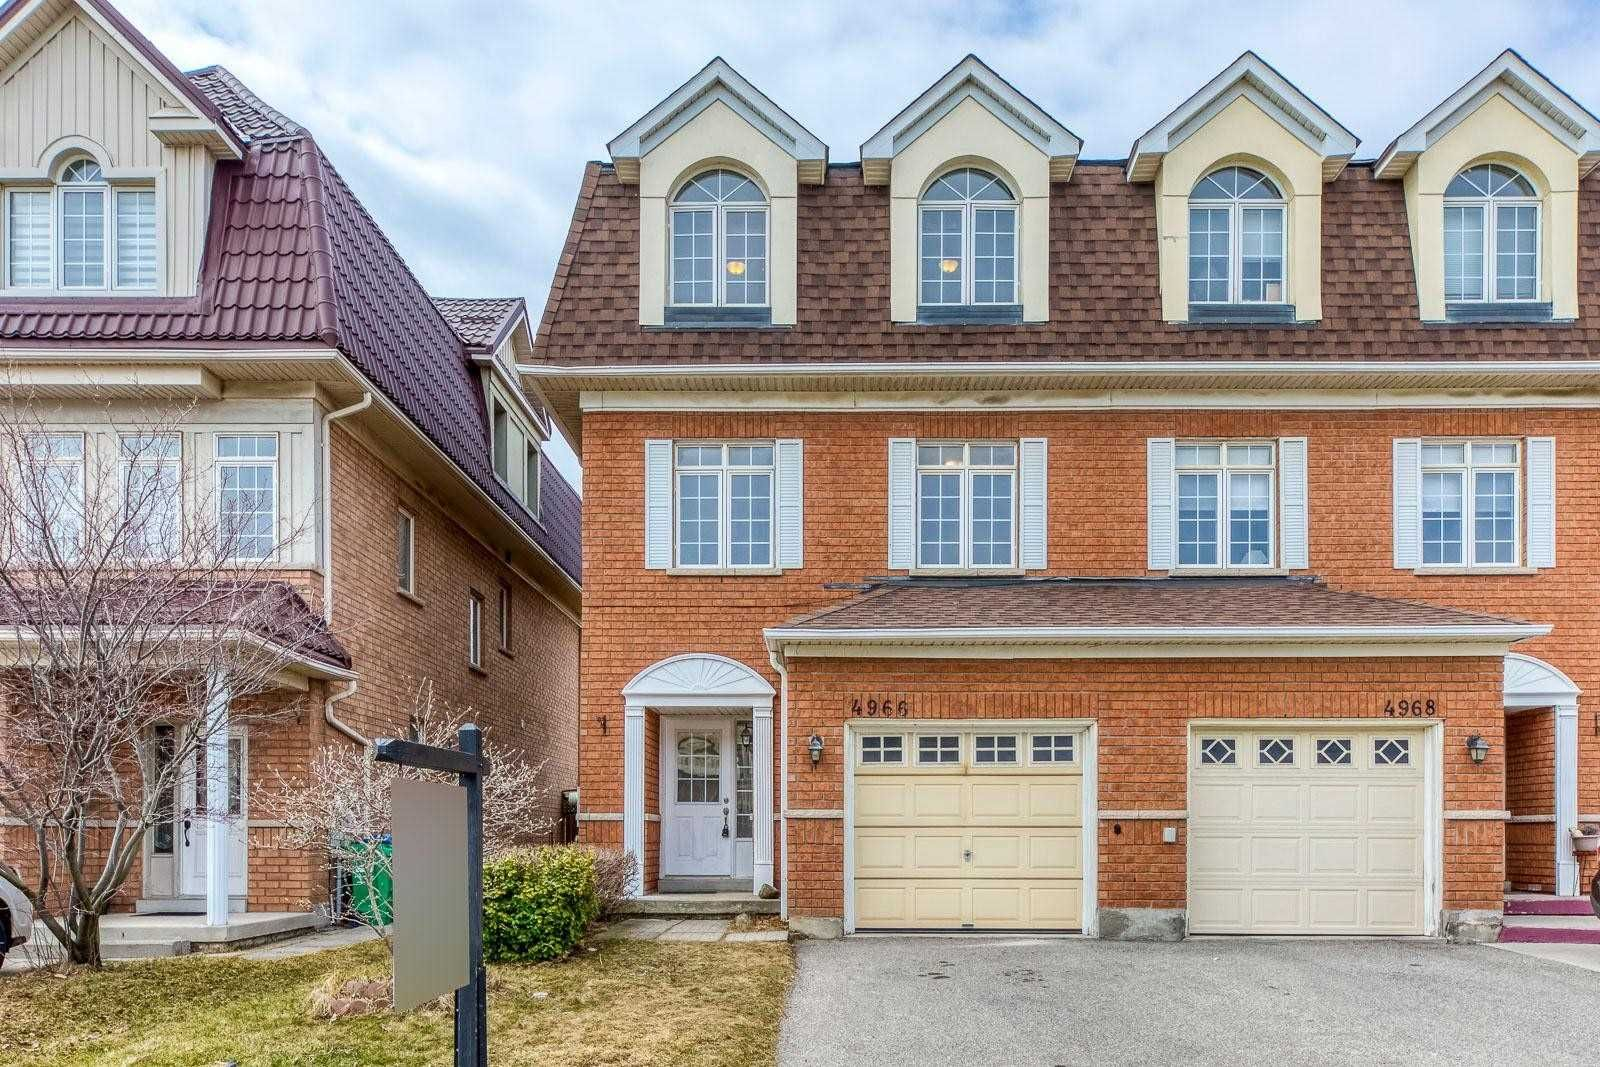 Main Photo: 4966 Southampton Drive in Mississauga: Churchill Meadows House (3-Storey) for sale : MLS®# W5166660